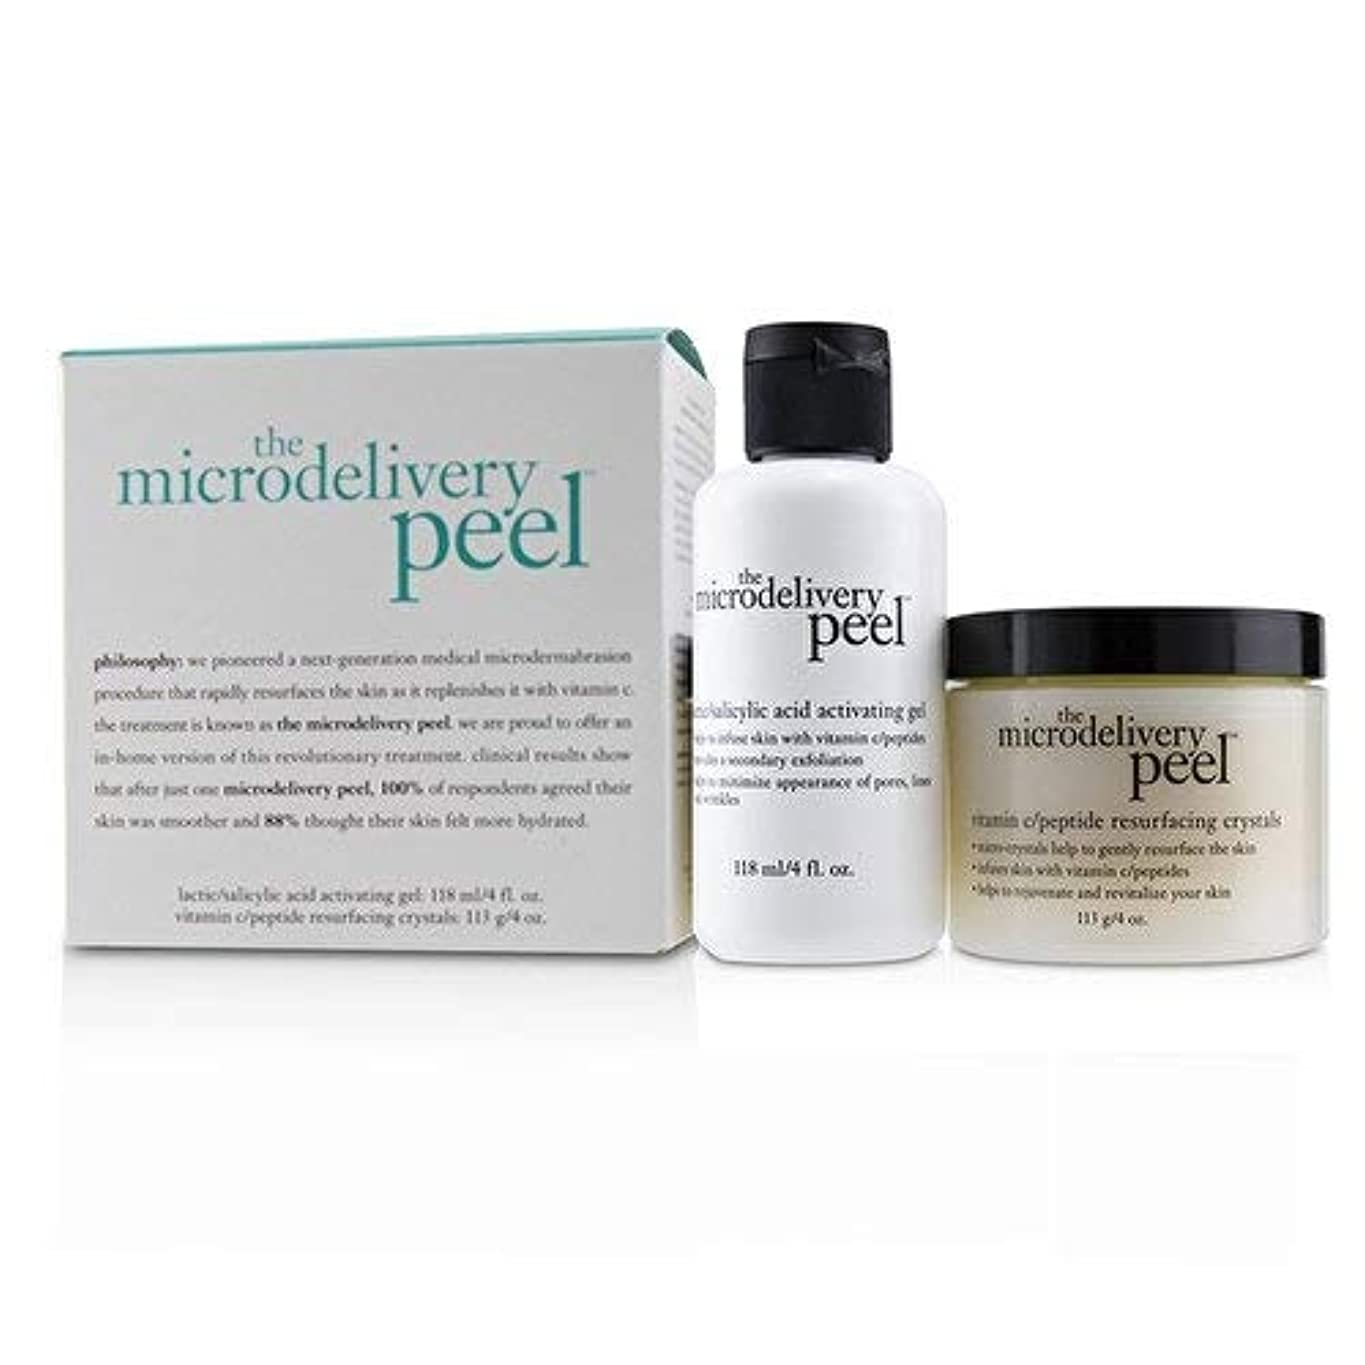 間欠苦オーナメントフィロソフィー The Microdelivery Peel: Lactic/Salicylic Acid Activating Gel 118ml + Vitamin C/Peptide Resurfacing Crystals 2pcs並行輸入品